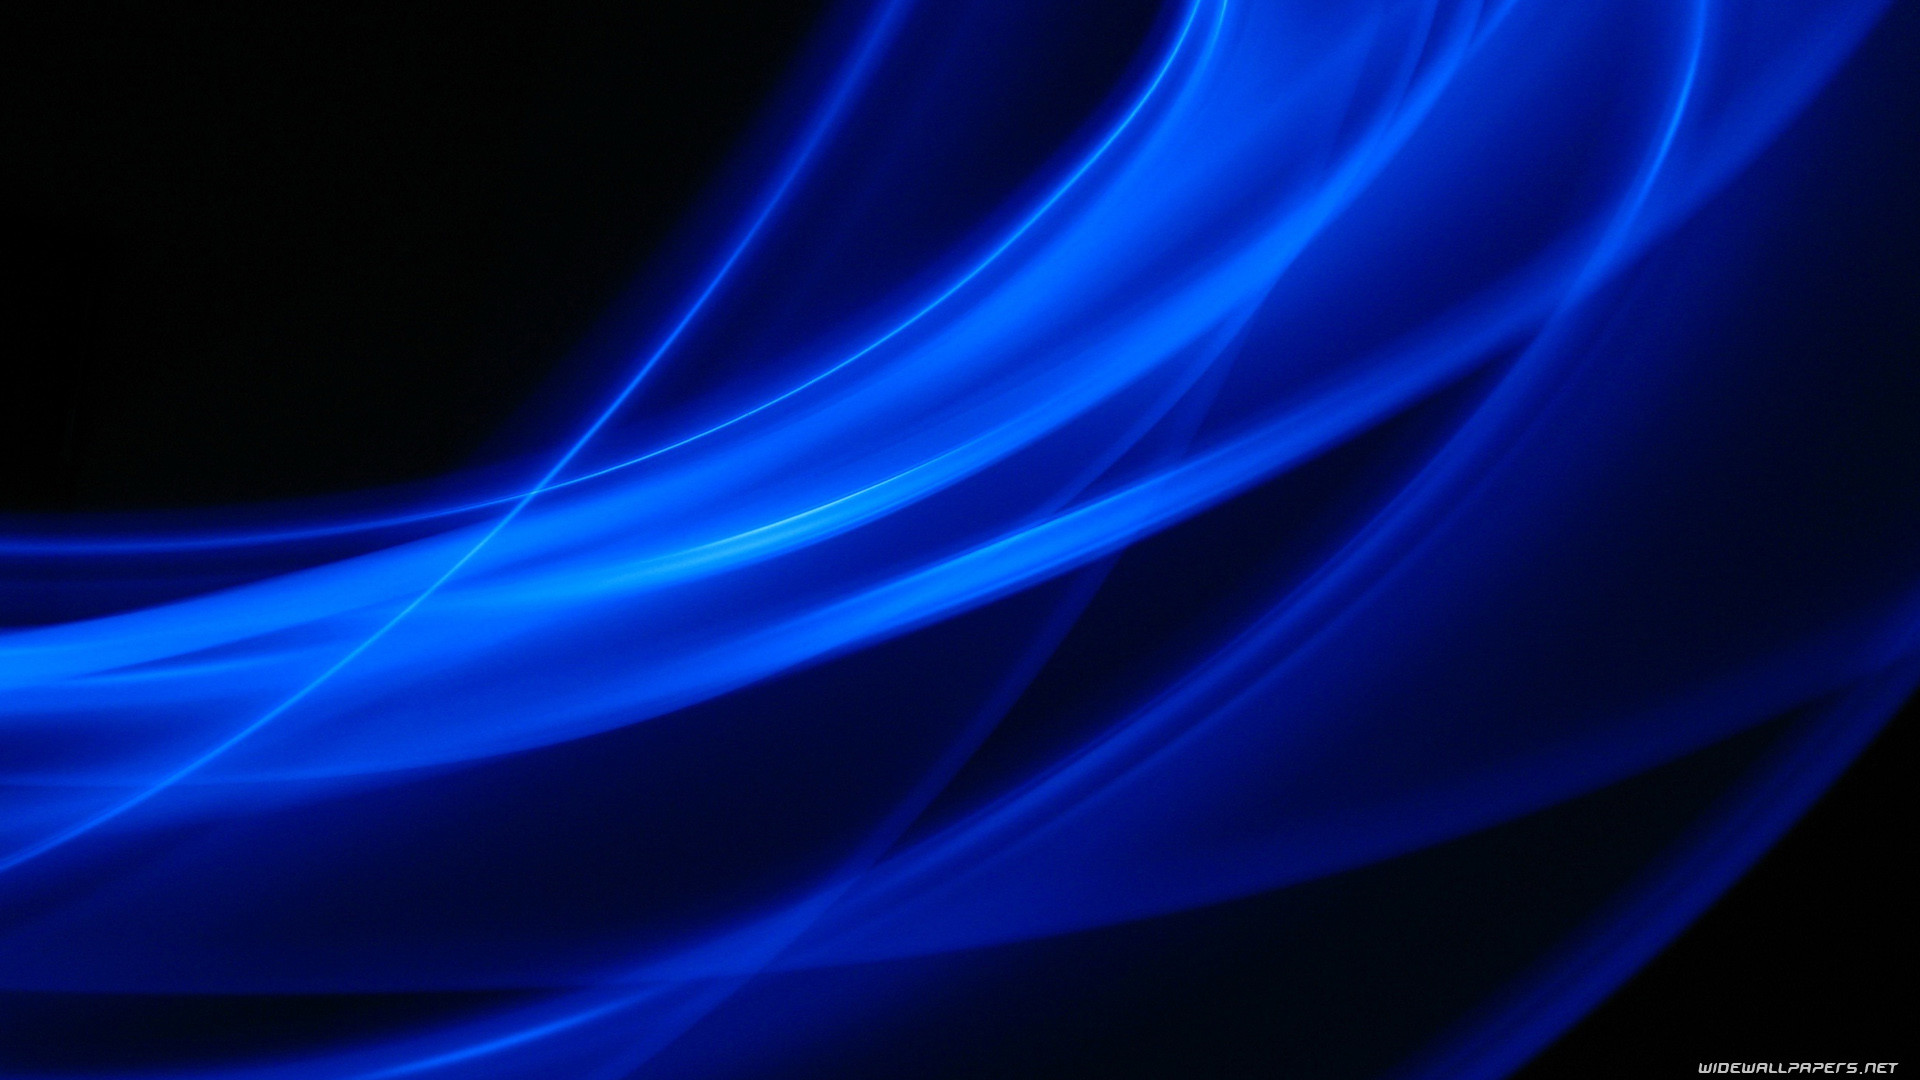 1920x1080 Blue Abstract Wallpapers Widescreen for Desktop Background Hd ..